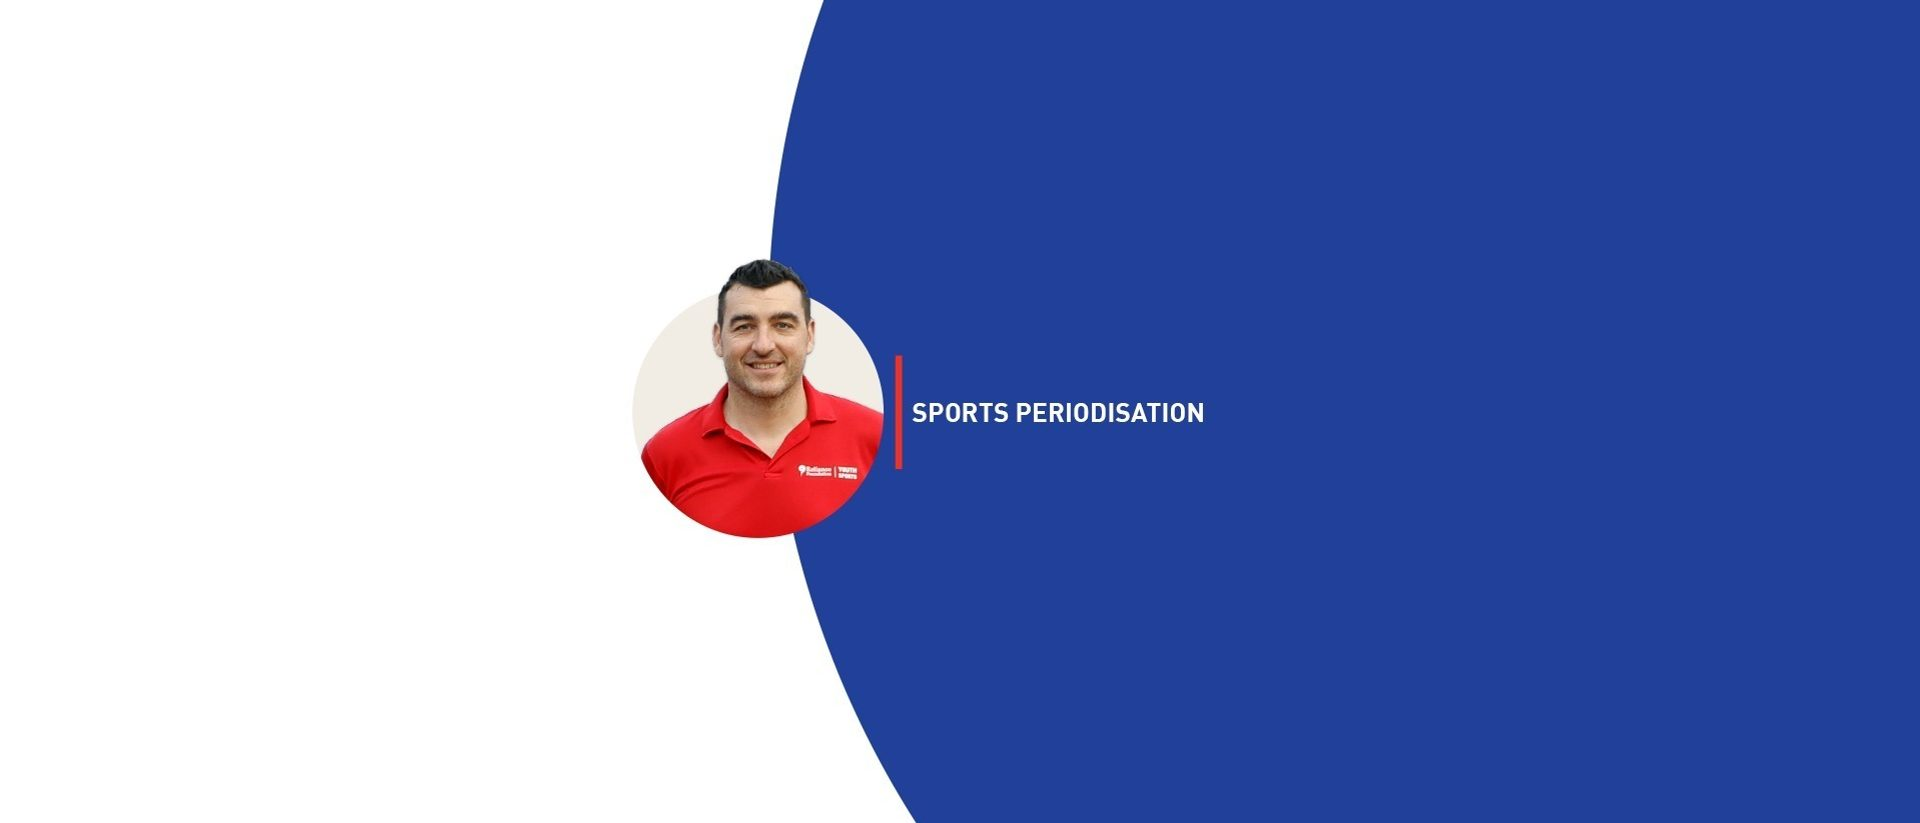 Learn with RFYS | James Hillier simplifies the Sports Periodisation model